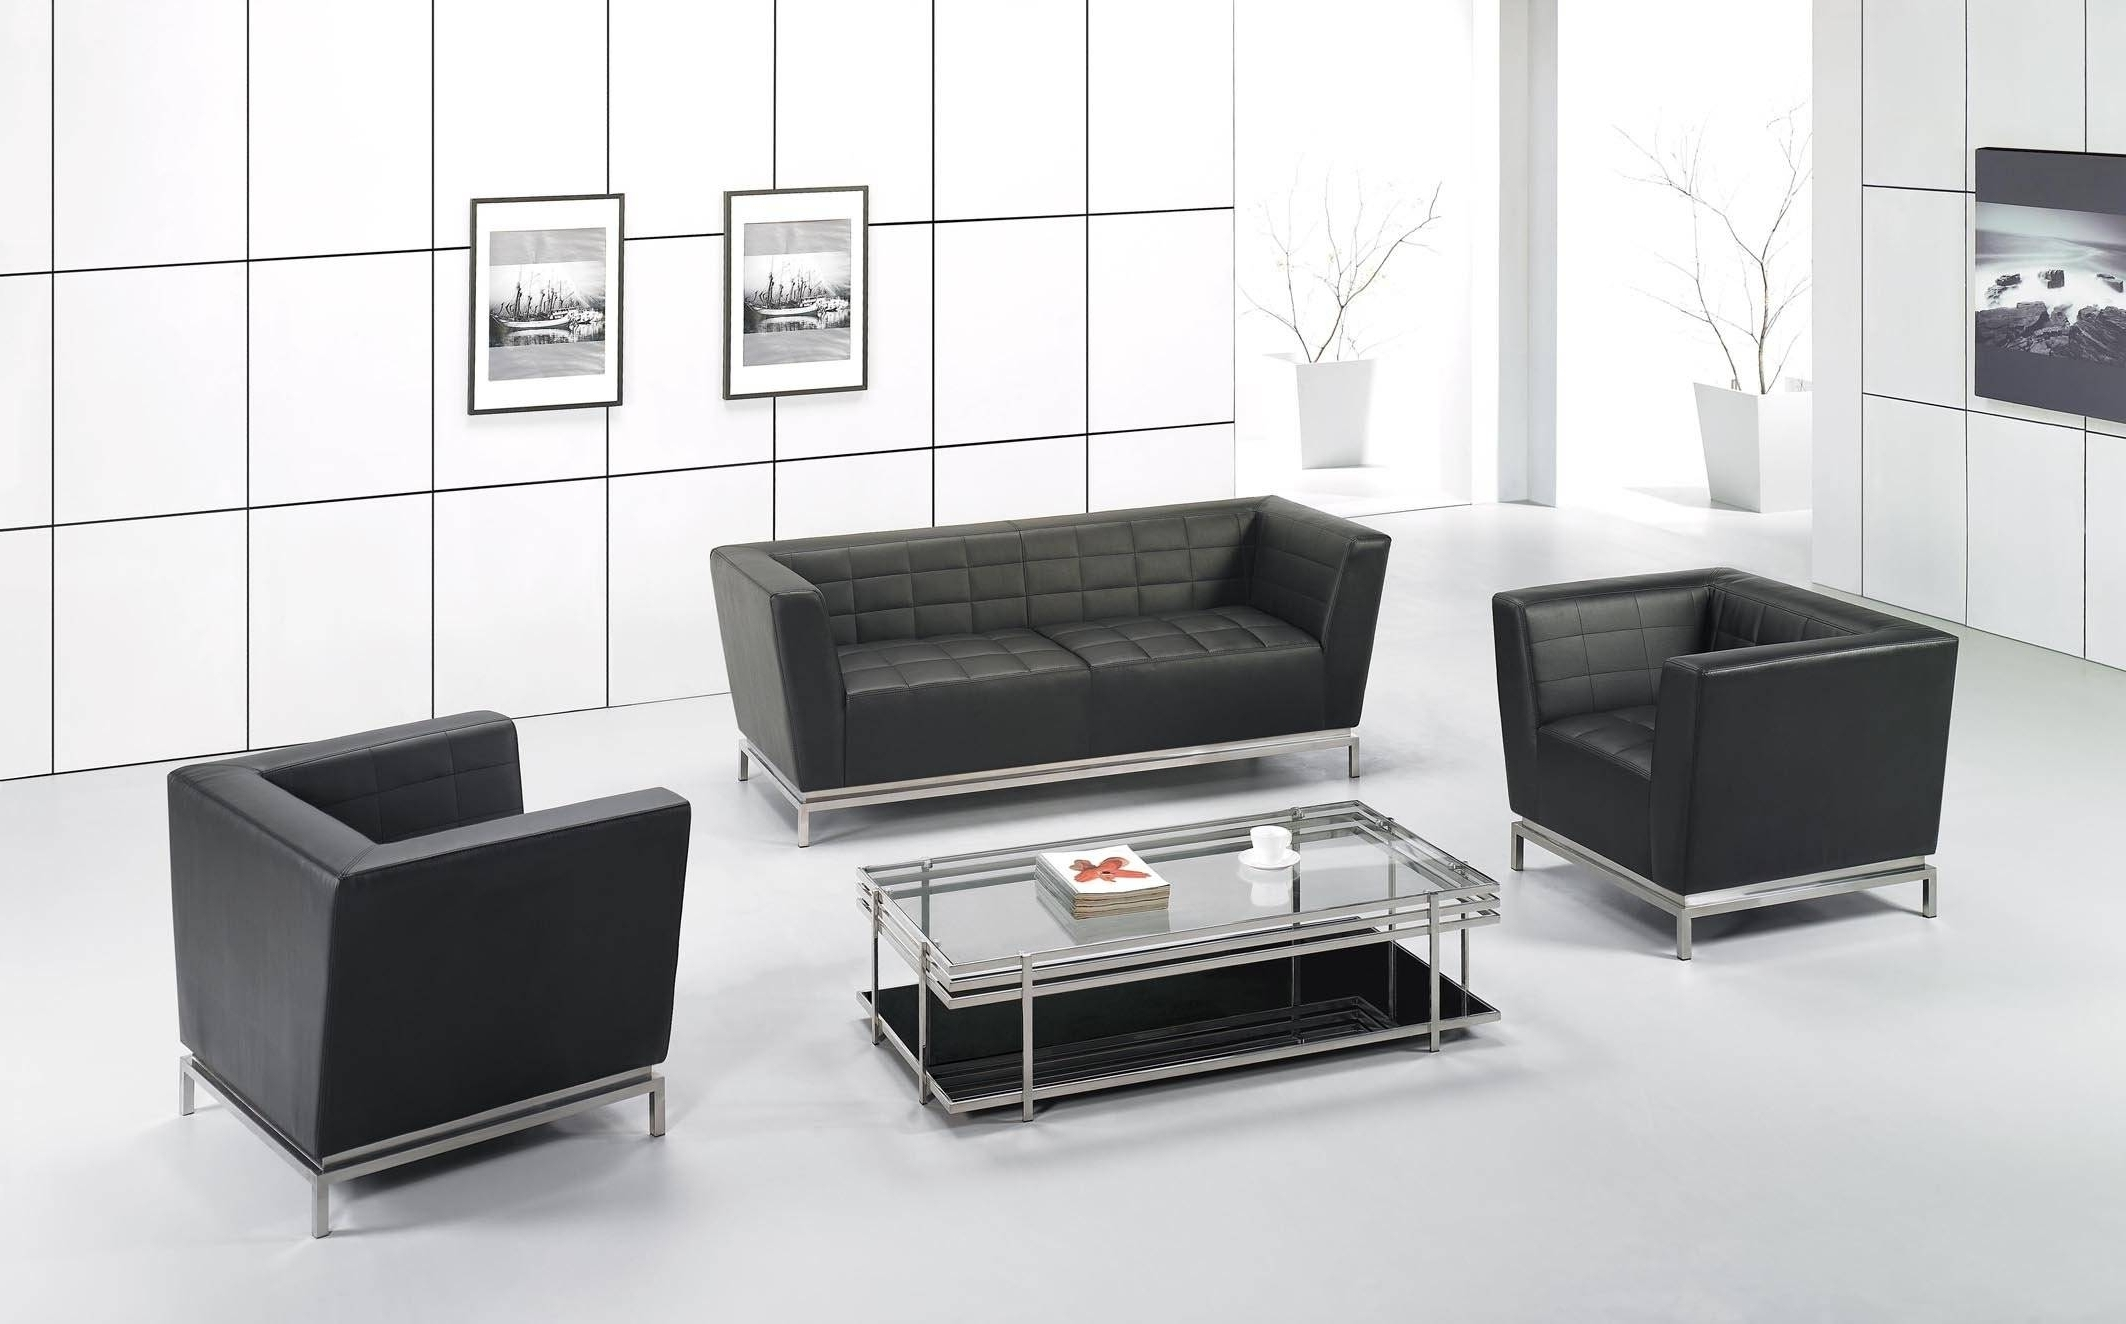 office sofas and chairs havertys metropolis sofa reviews view gallery of showing 11 20 photos most up to date inside comfortable chair desk leather